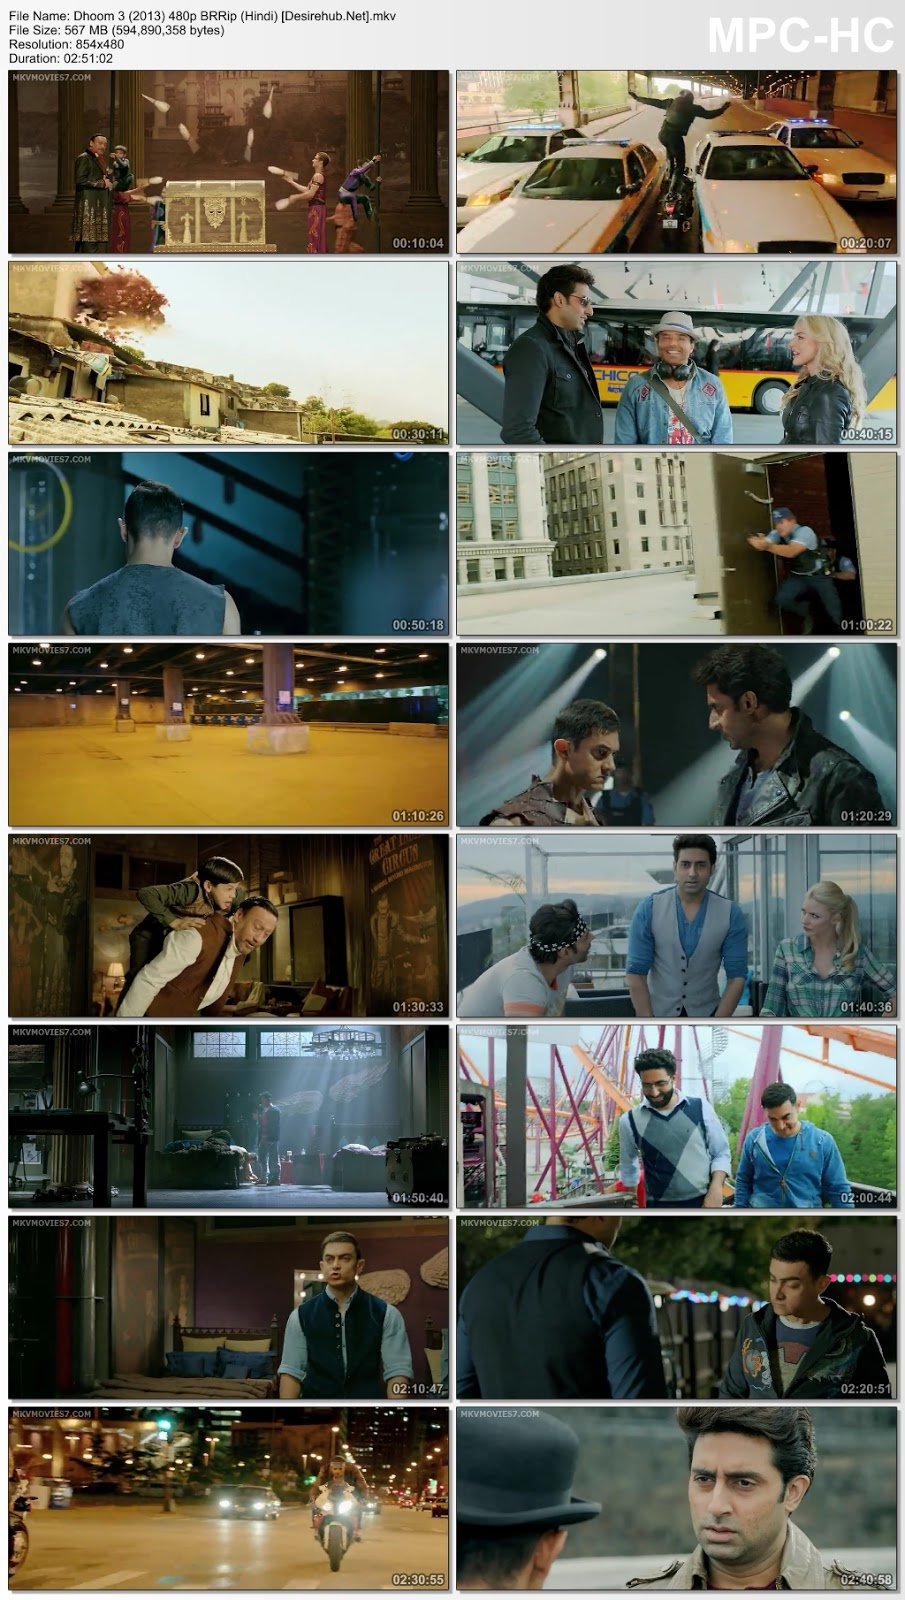 Dhoom 3 (2013) Hindi 480p BluRay 550MB Desirehub